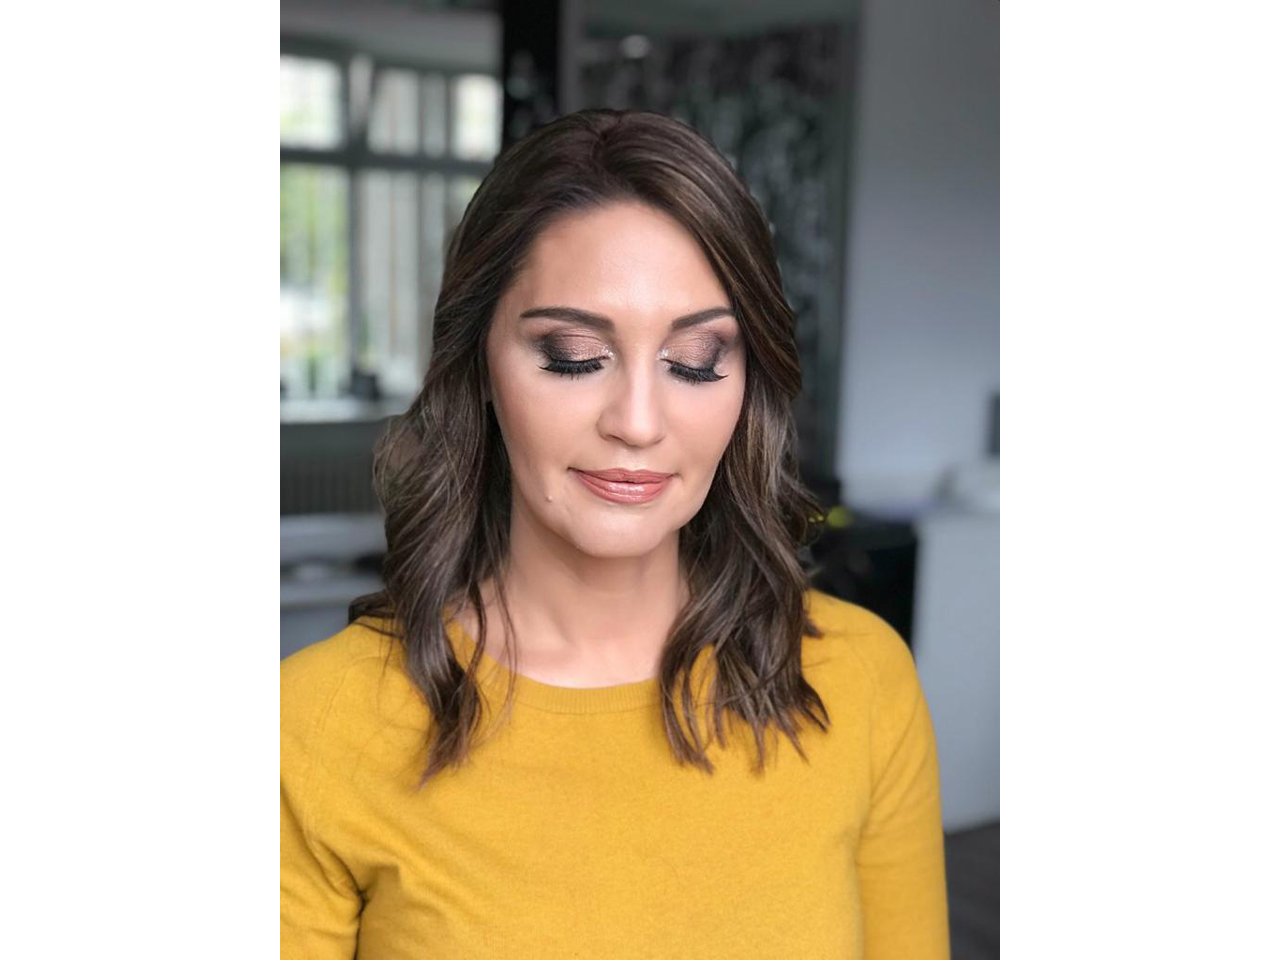 ANA BEAUTY MAKE UP Profesionalna šminka Beograd